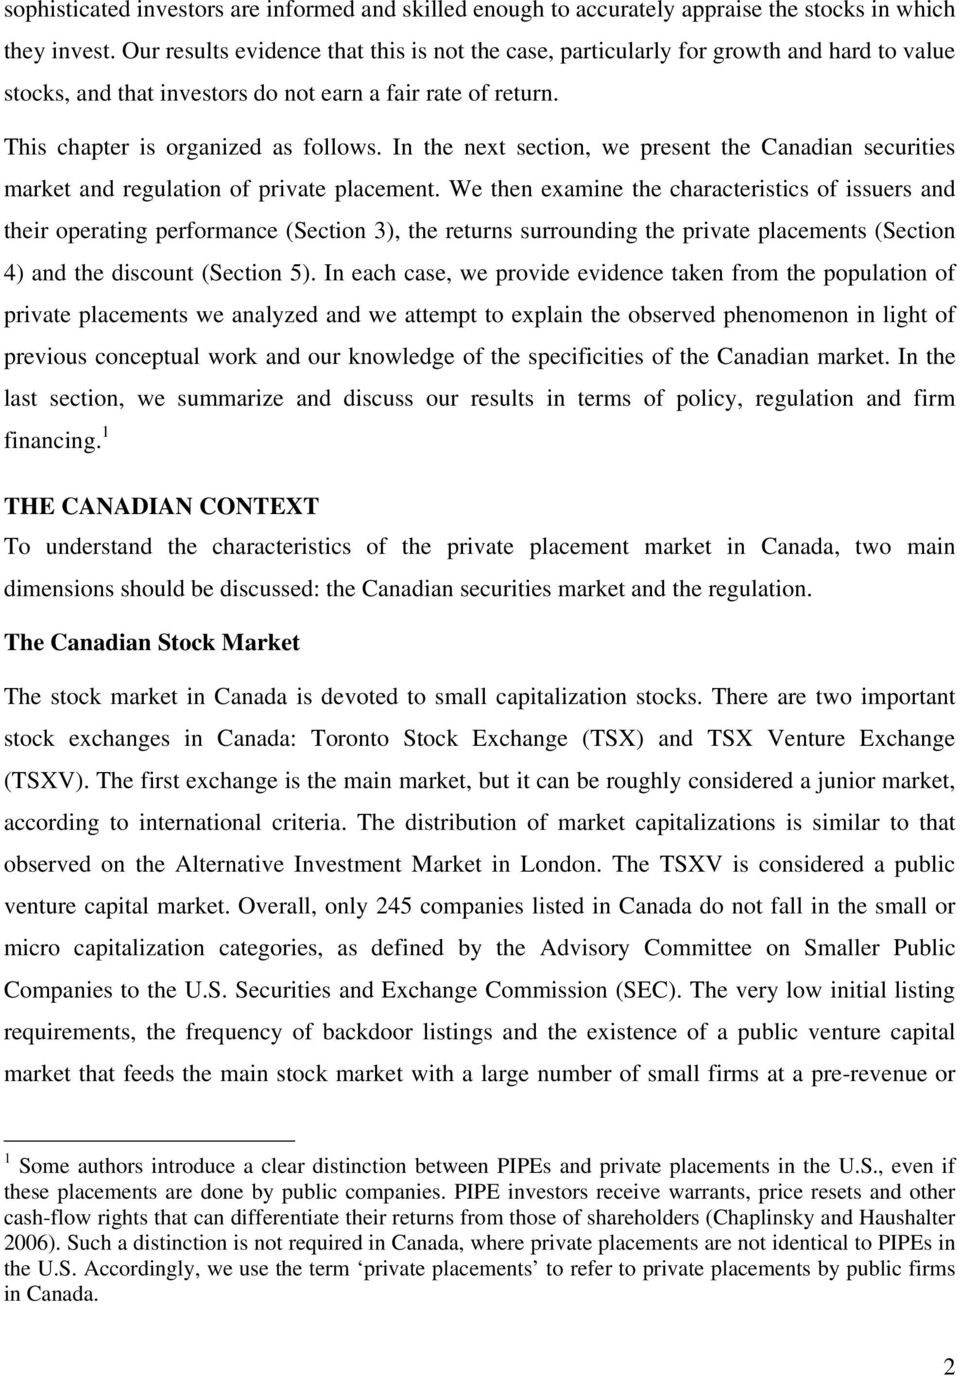 In the next section, we present the Canadian securities market and regulation of private placement.